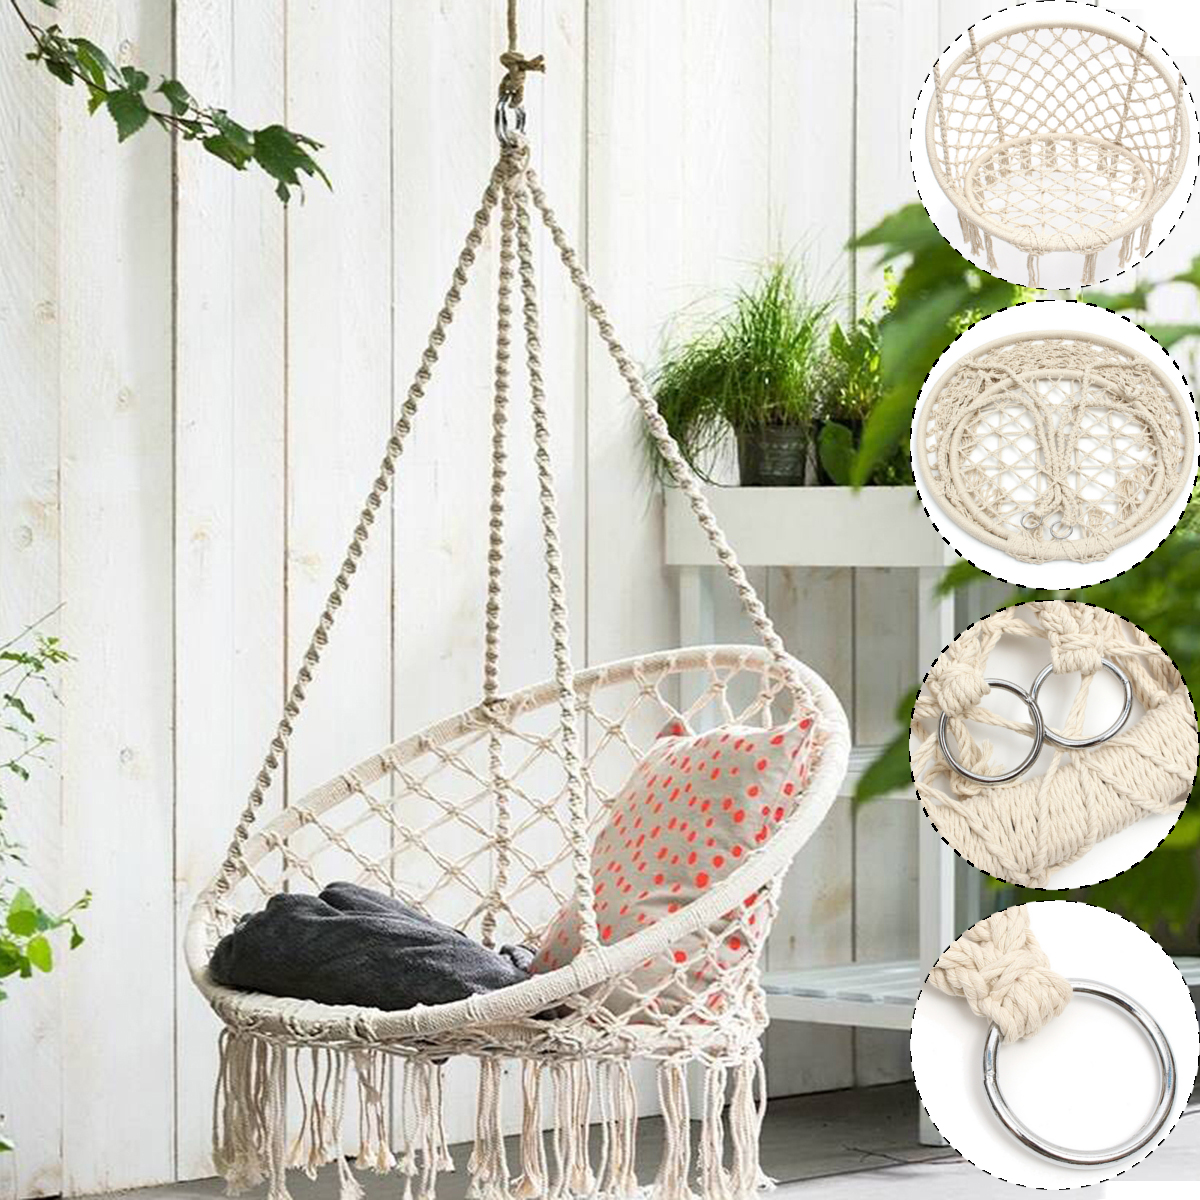 Hammock Chair Hanging Chair Swing With Soft Cushion & Durable Hanging Hardware Kit, Cotton Rope Indoor Macrame Swing Chairs For